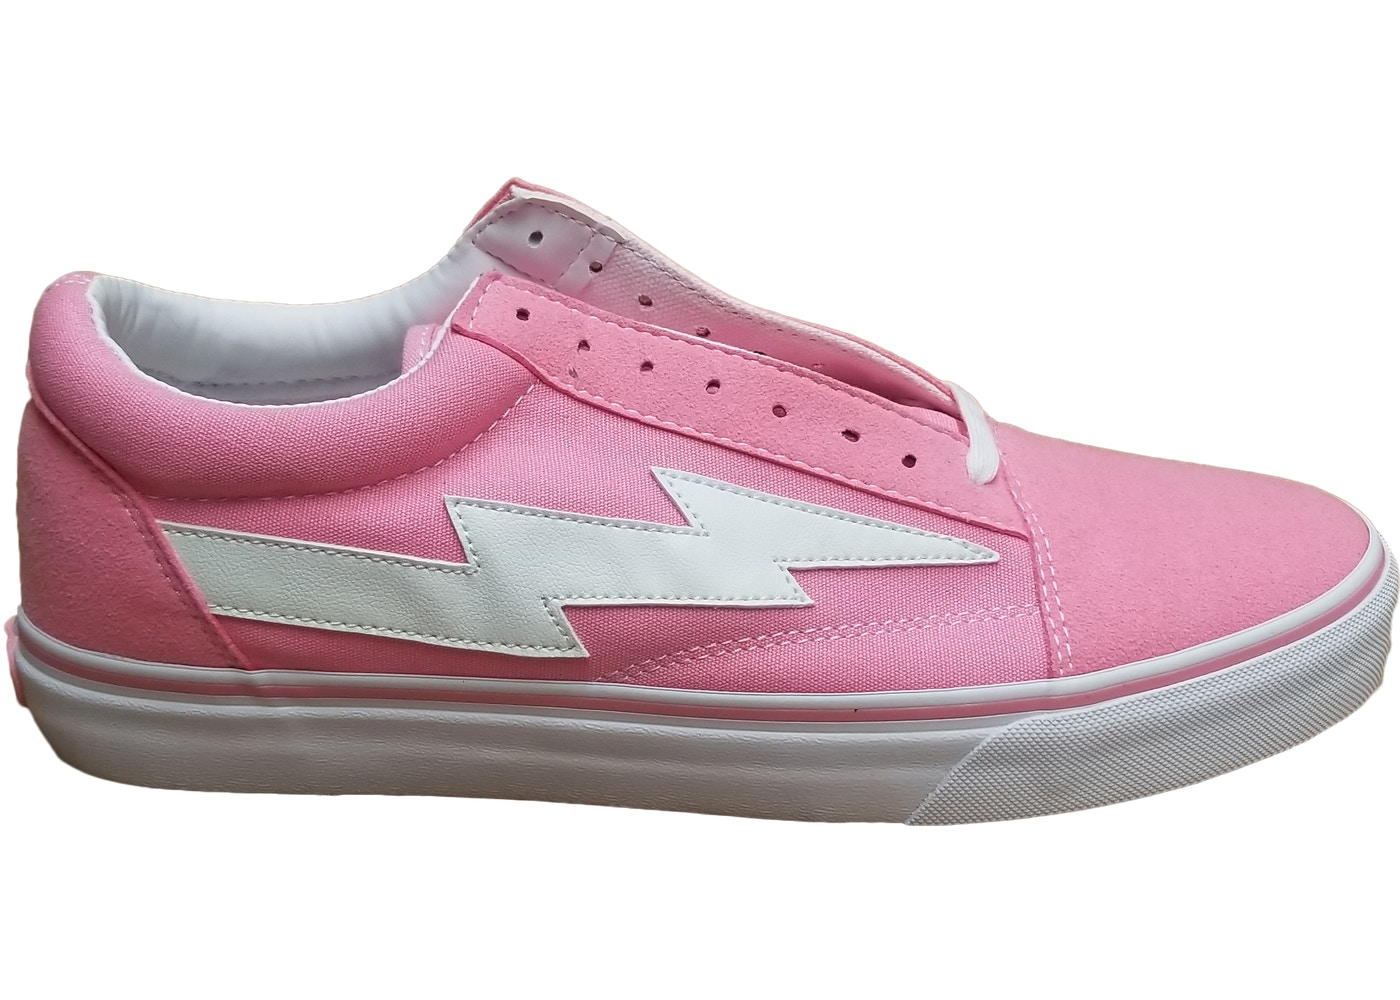 check out b8d9b 87202 Revenge X Storm Low Pink - undefined